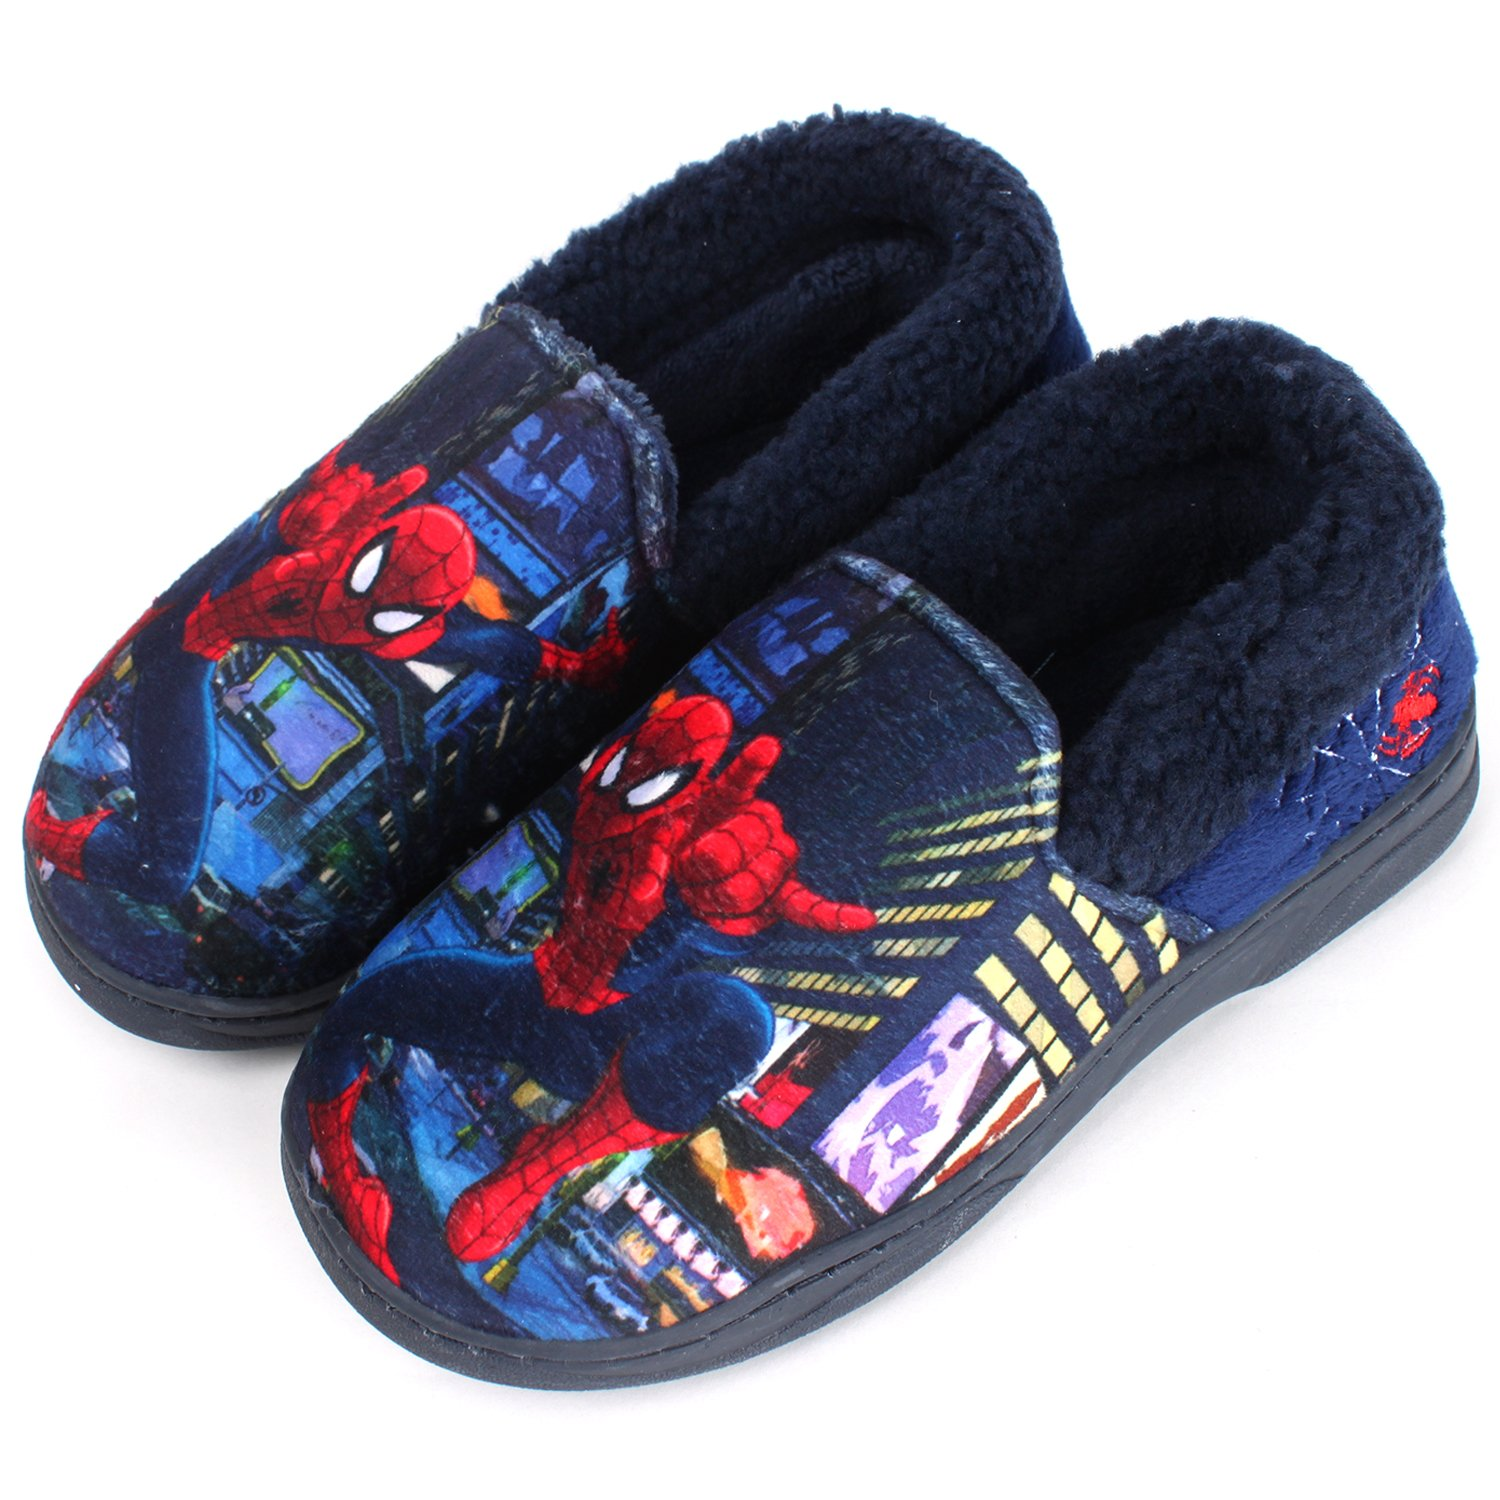 Joah Store Spider-Man Slippers for Boys Navy Red Warm Fur Clog Mule Indoor Shoes (3.5 M US Big Kid, Spider-Man) by Joah Store (Image #3)